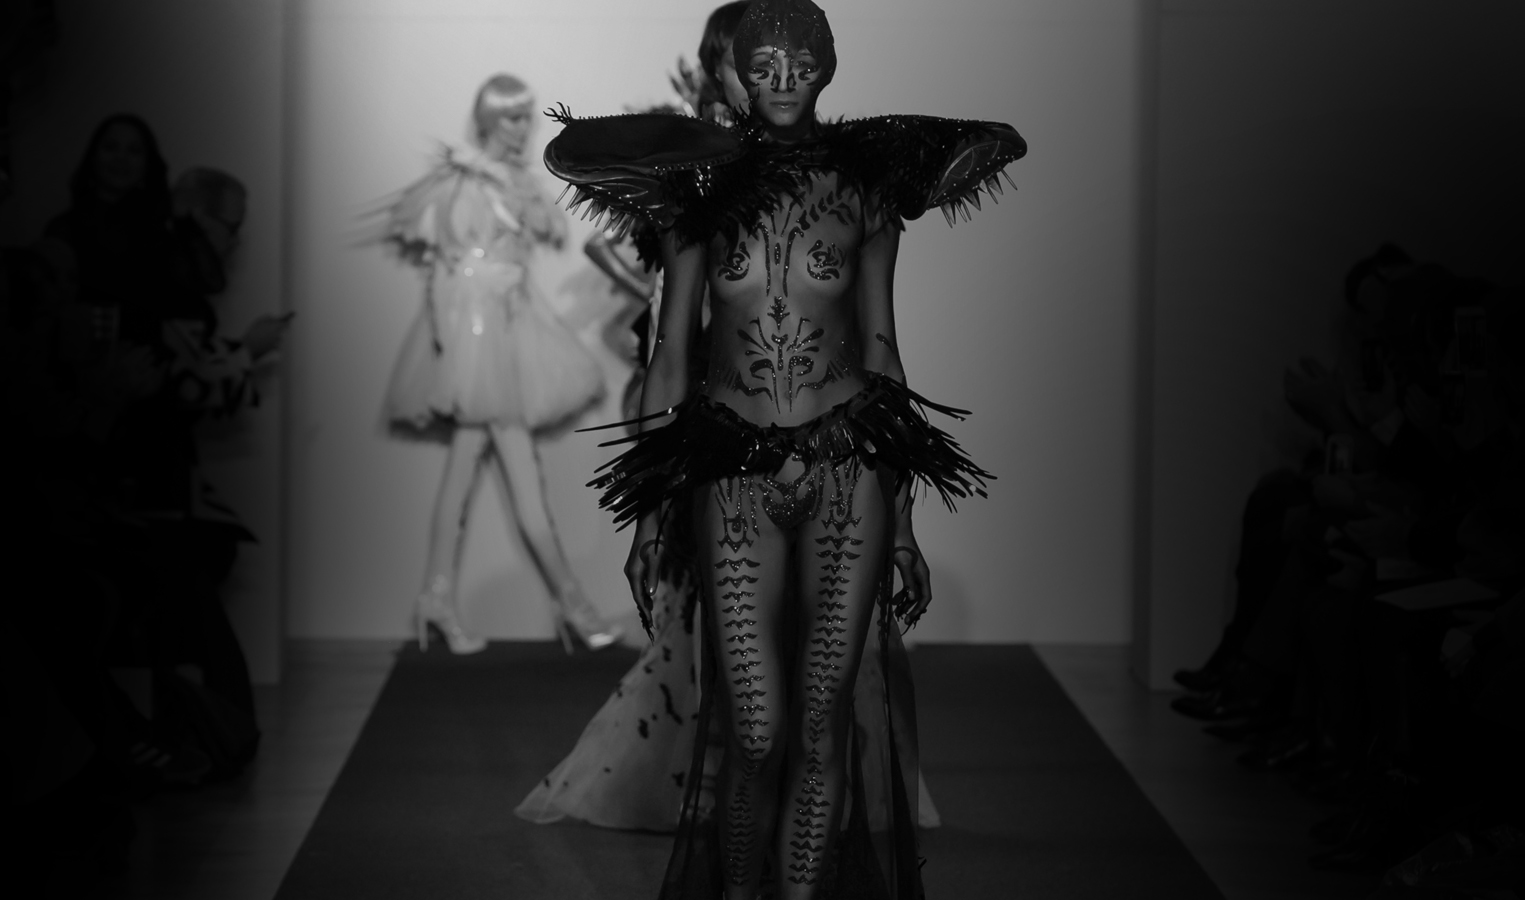 The final of on aura tout vu fashion show couture ss16